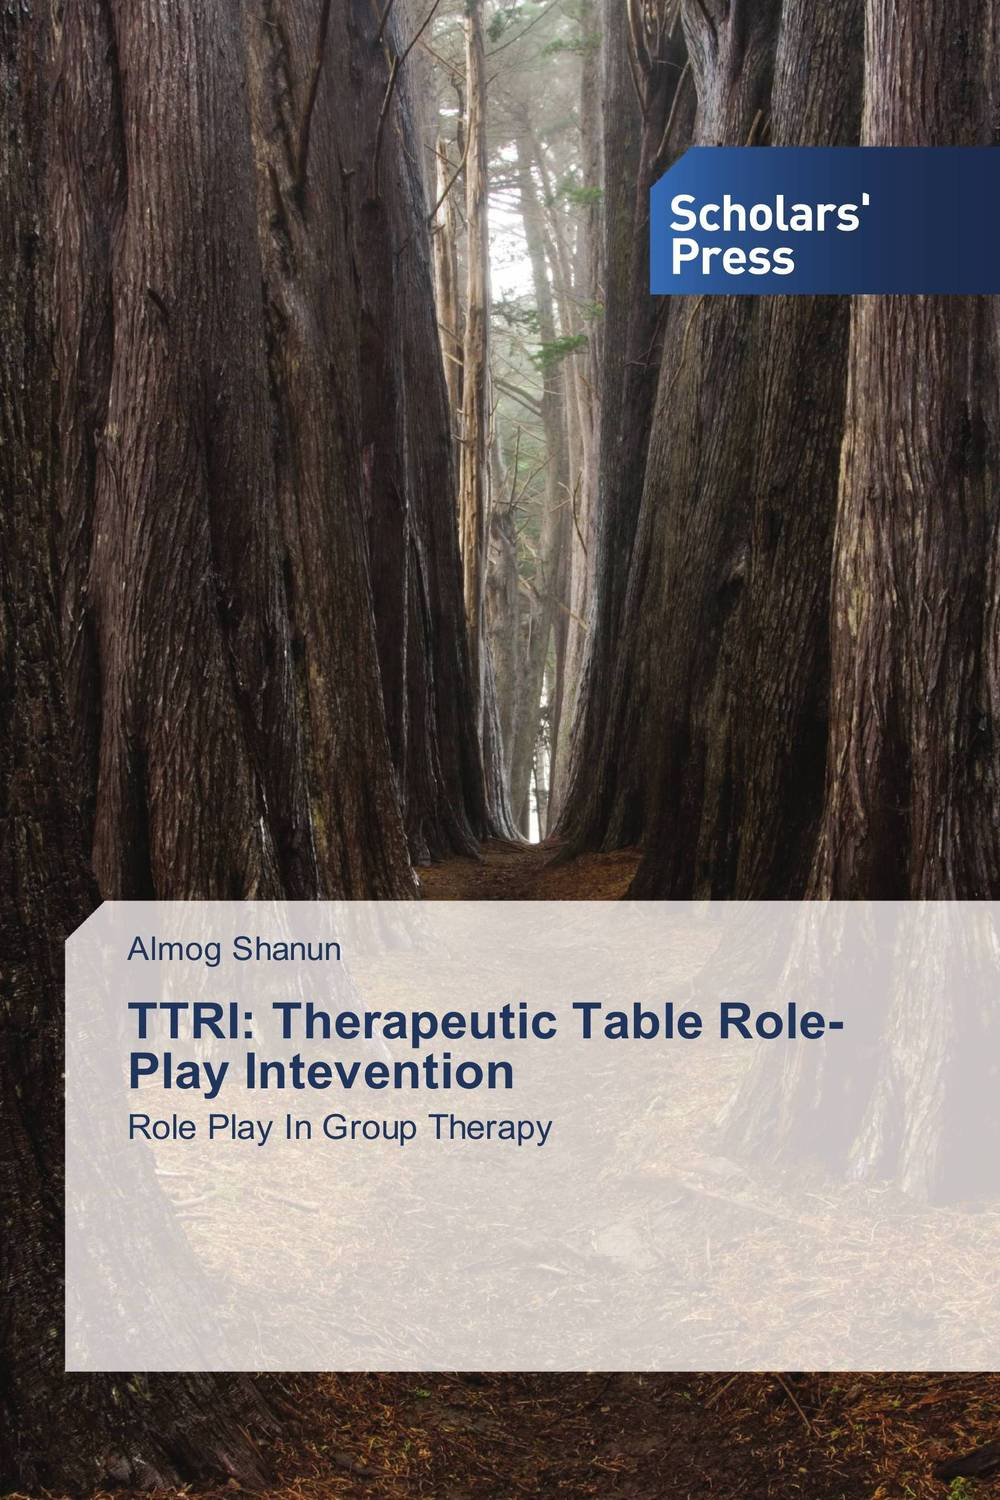 TTRI: Therapeutic Table Role-Play Intevention вибратор vibe therapy ttri pink розовый